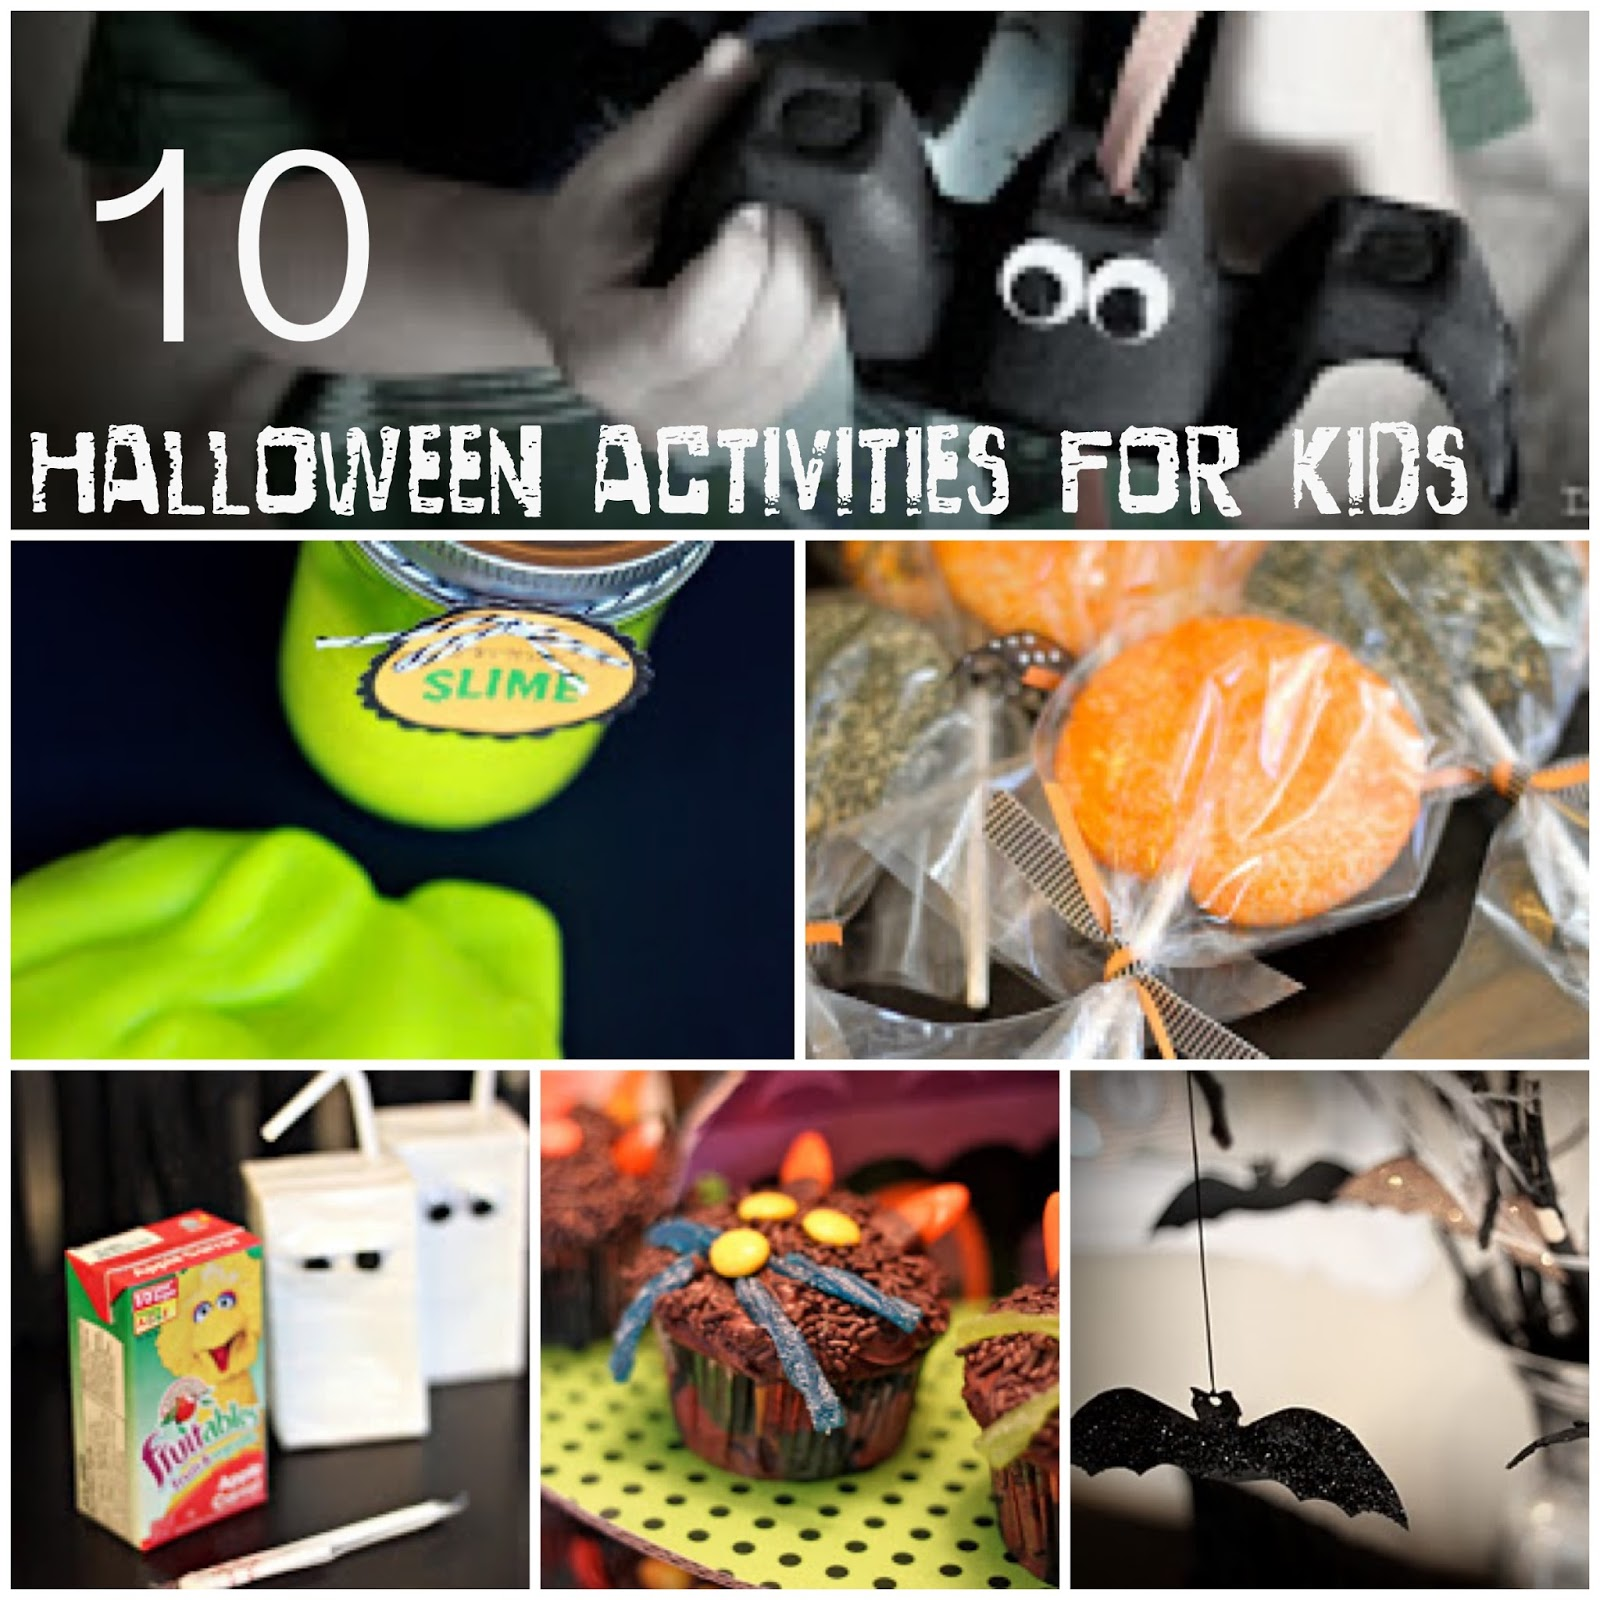 10 fun things to do with your kids for halloween - Halloween Fun Activities For Kids